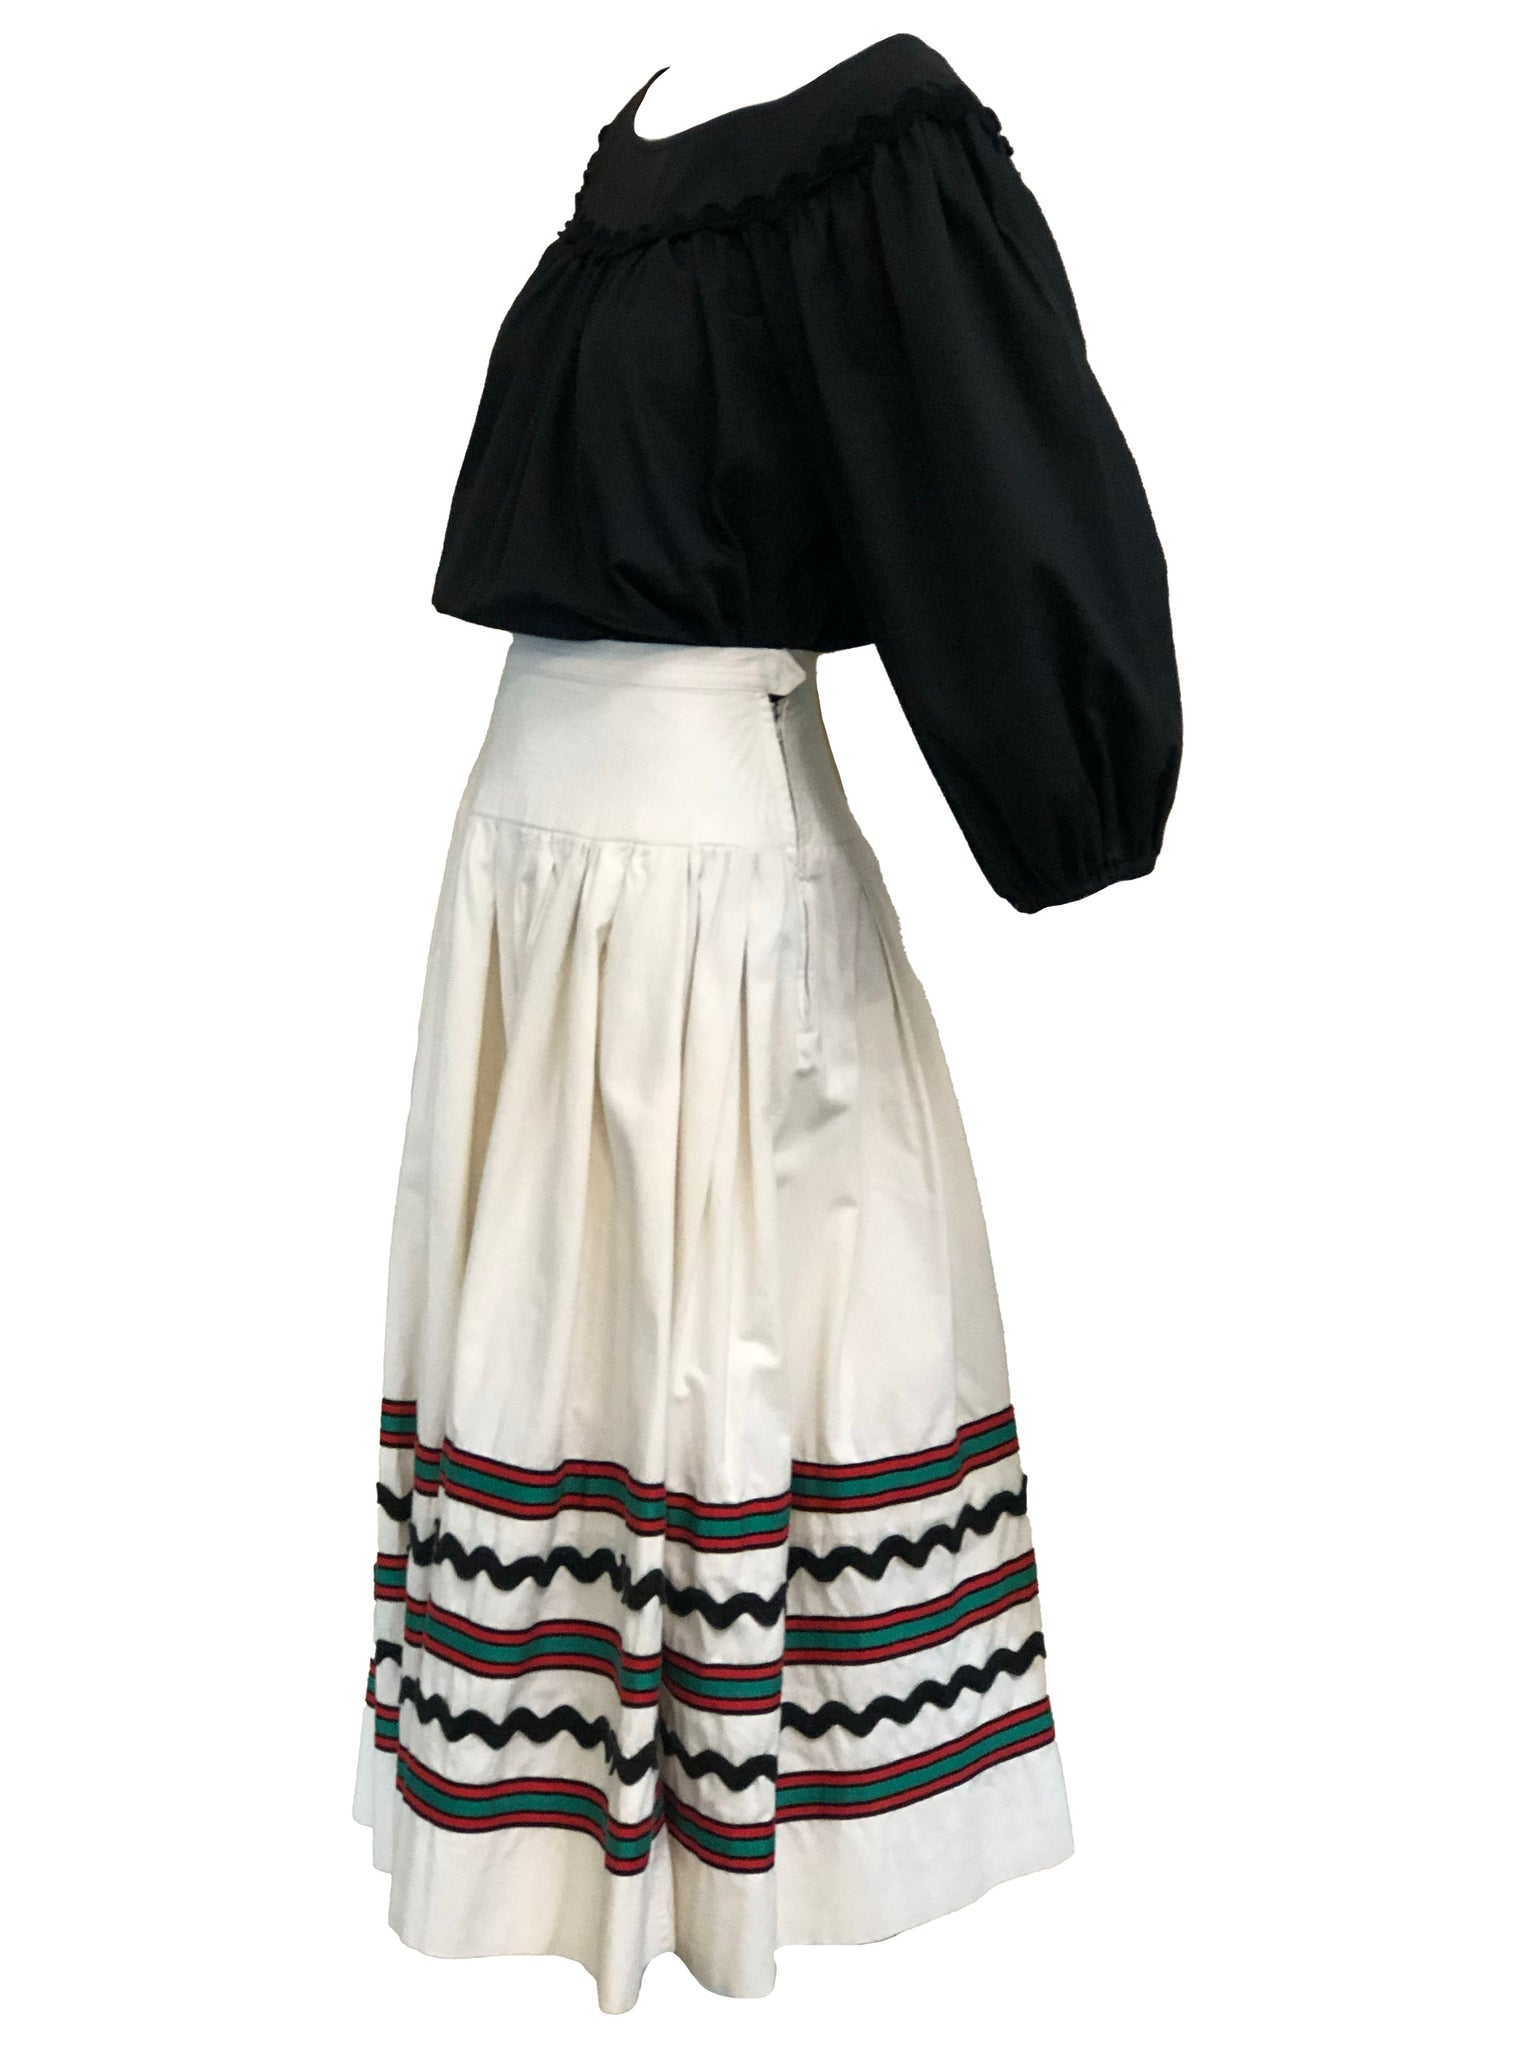 YSL 1970s Peasant Ensemble in Black and White SIDE 2 of 6